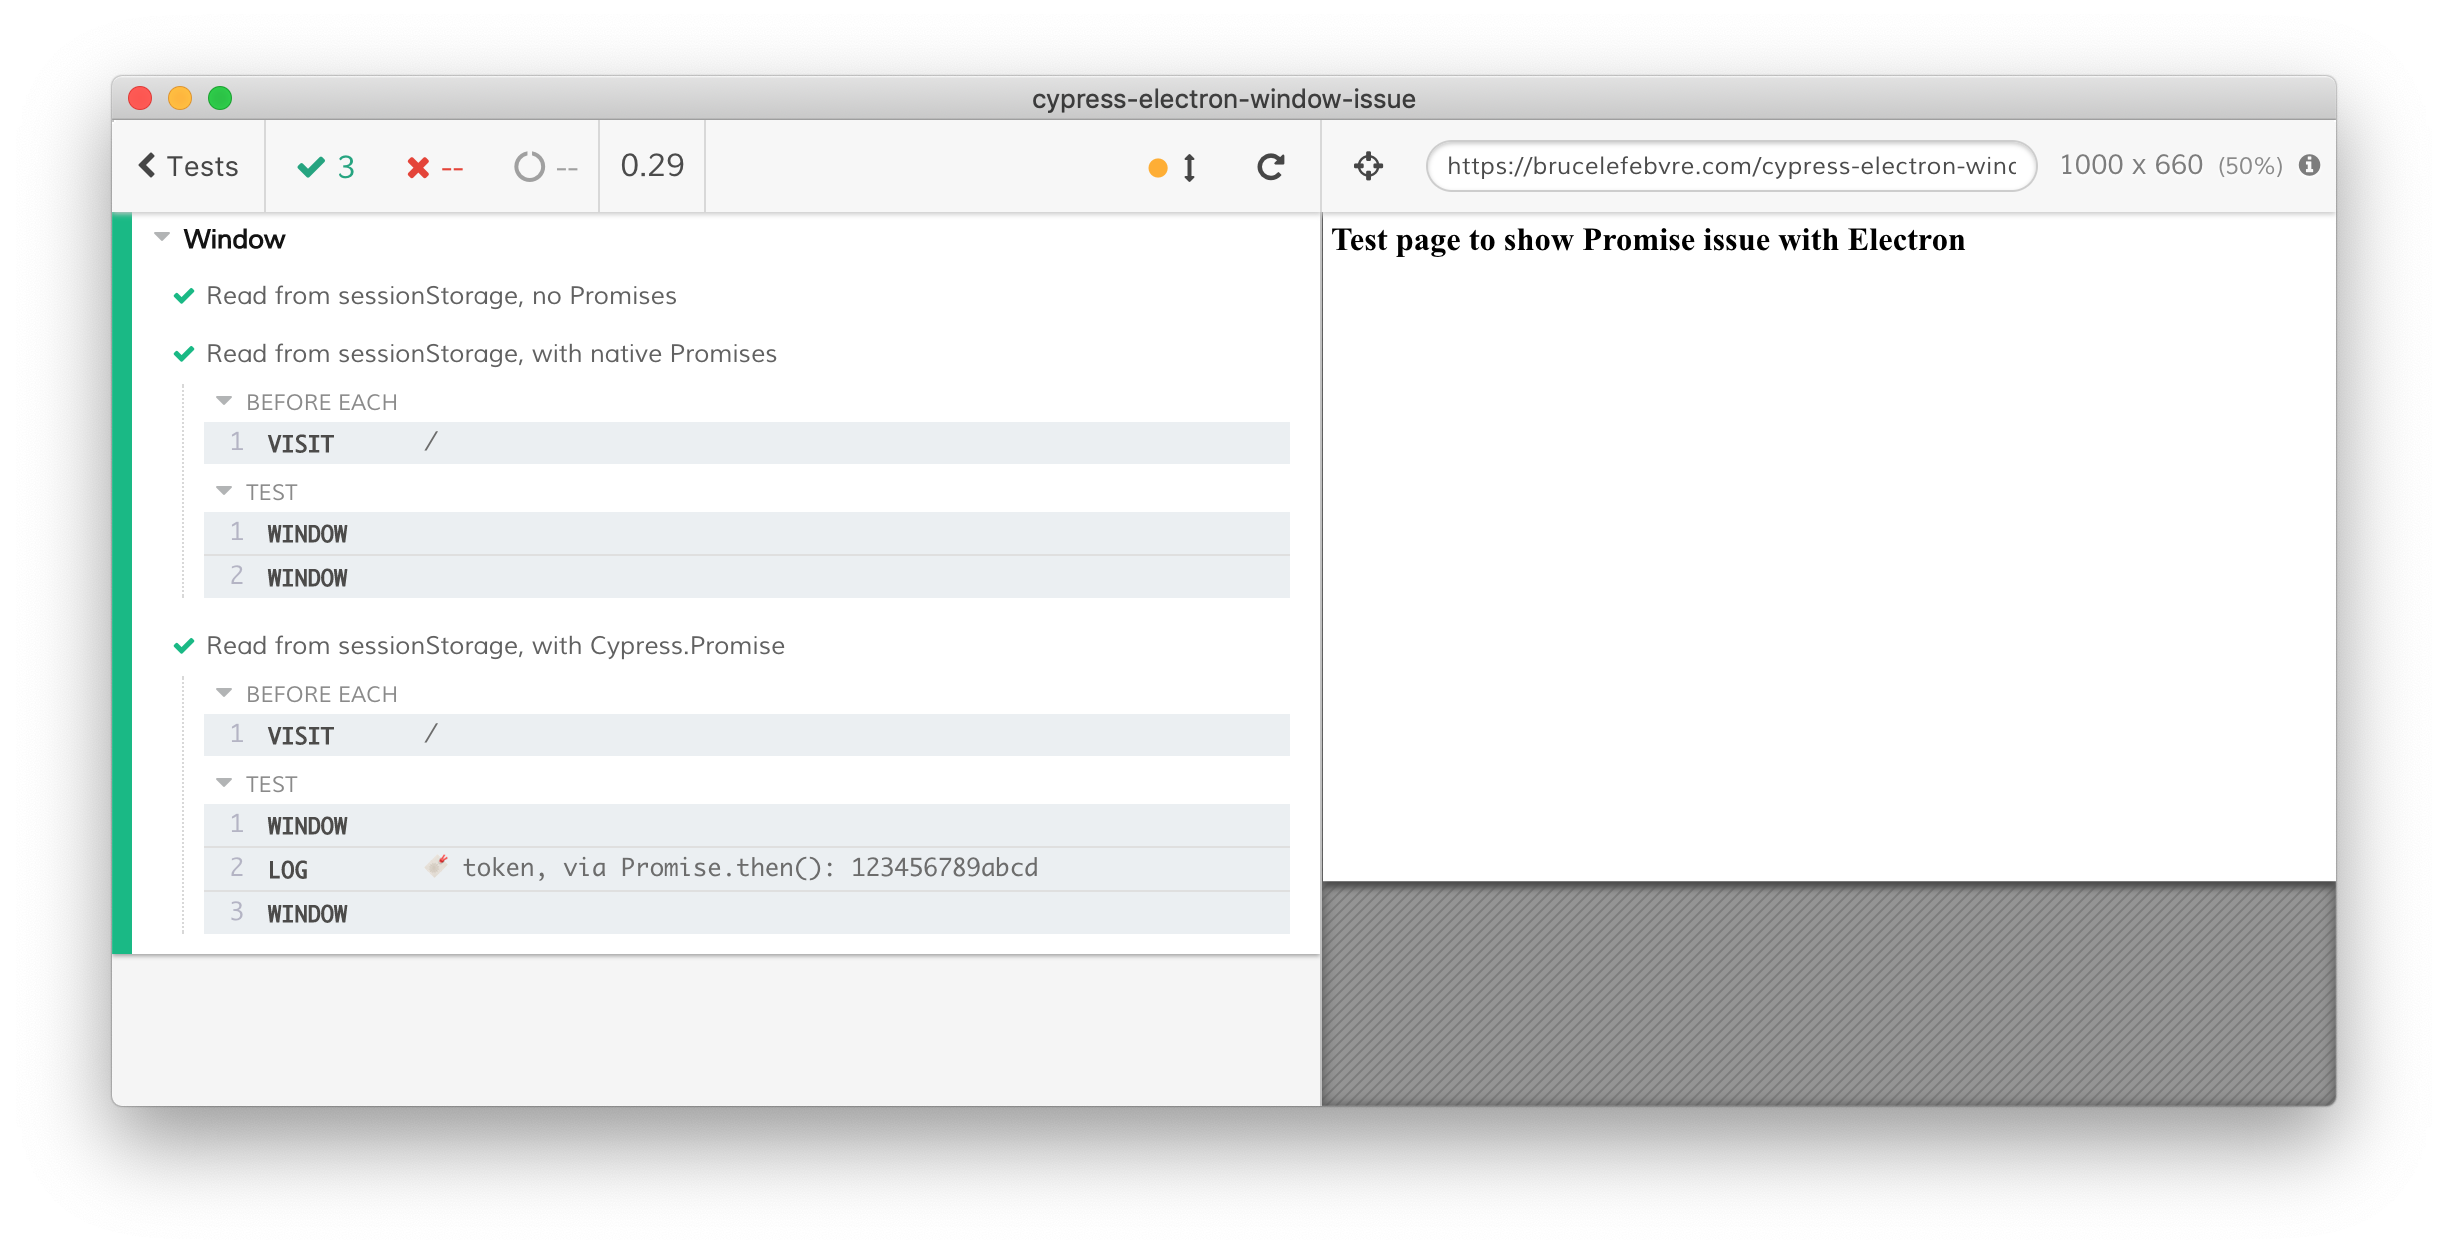 Electron browser window showing all tests passing, with log statements missing